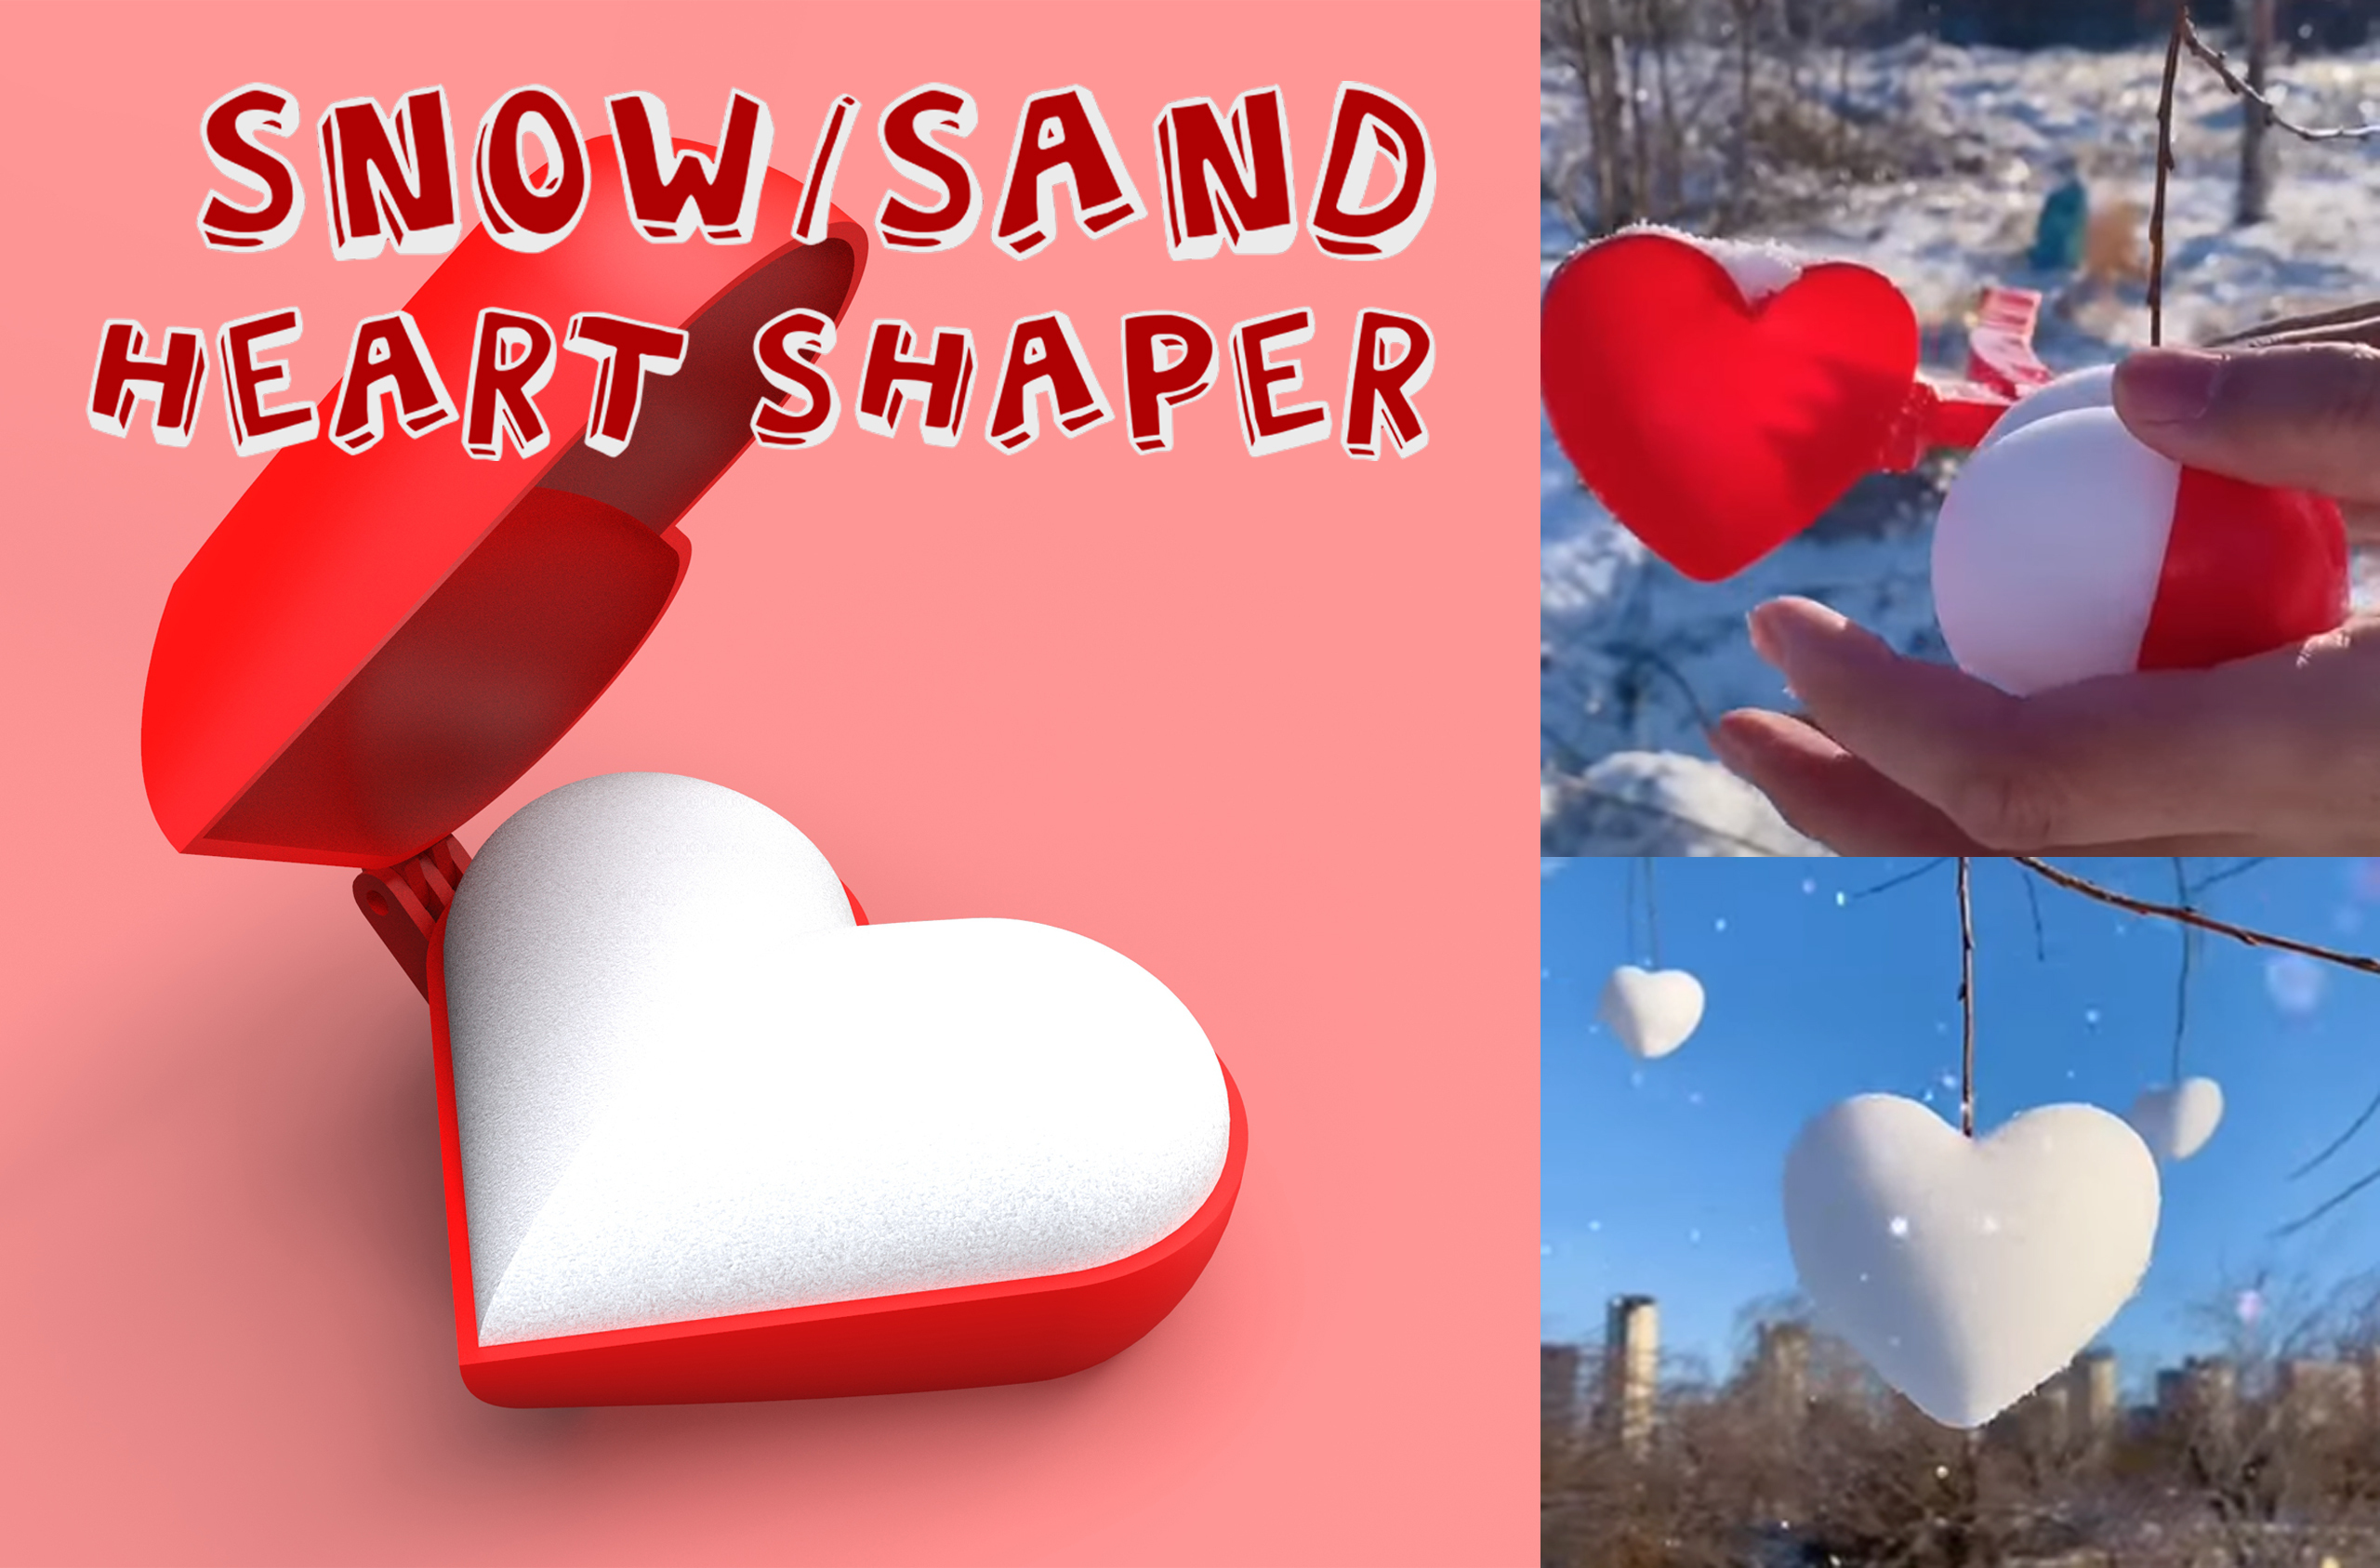 Snow.jpg Download STL file Snow and Sand Heart shaper • 3D printer template, LaProto